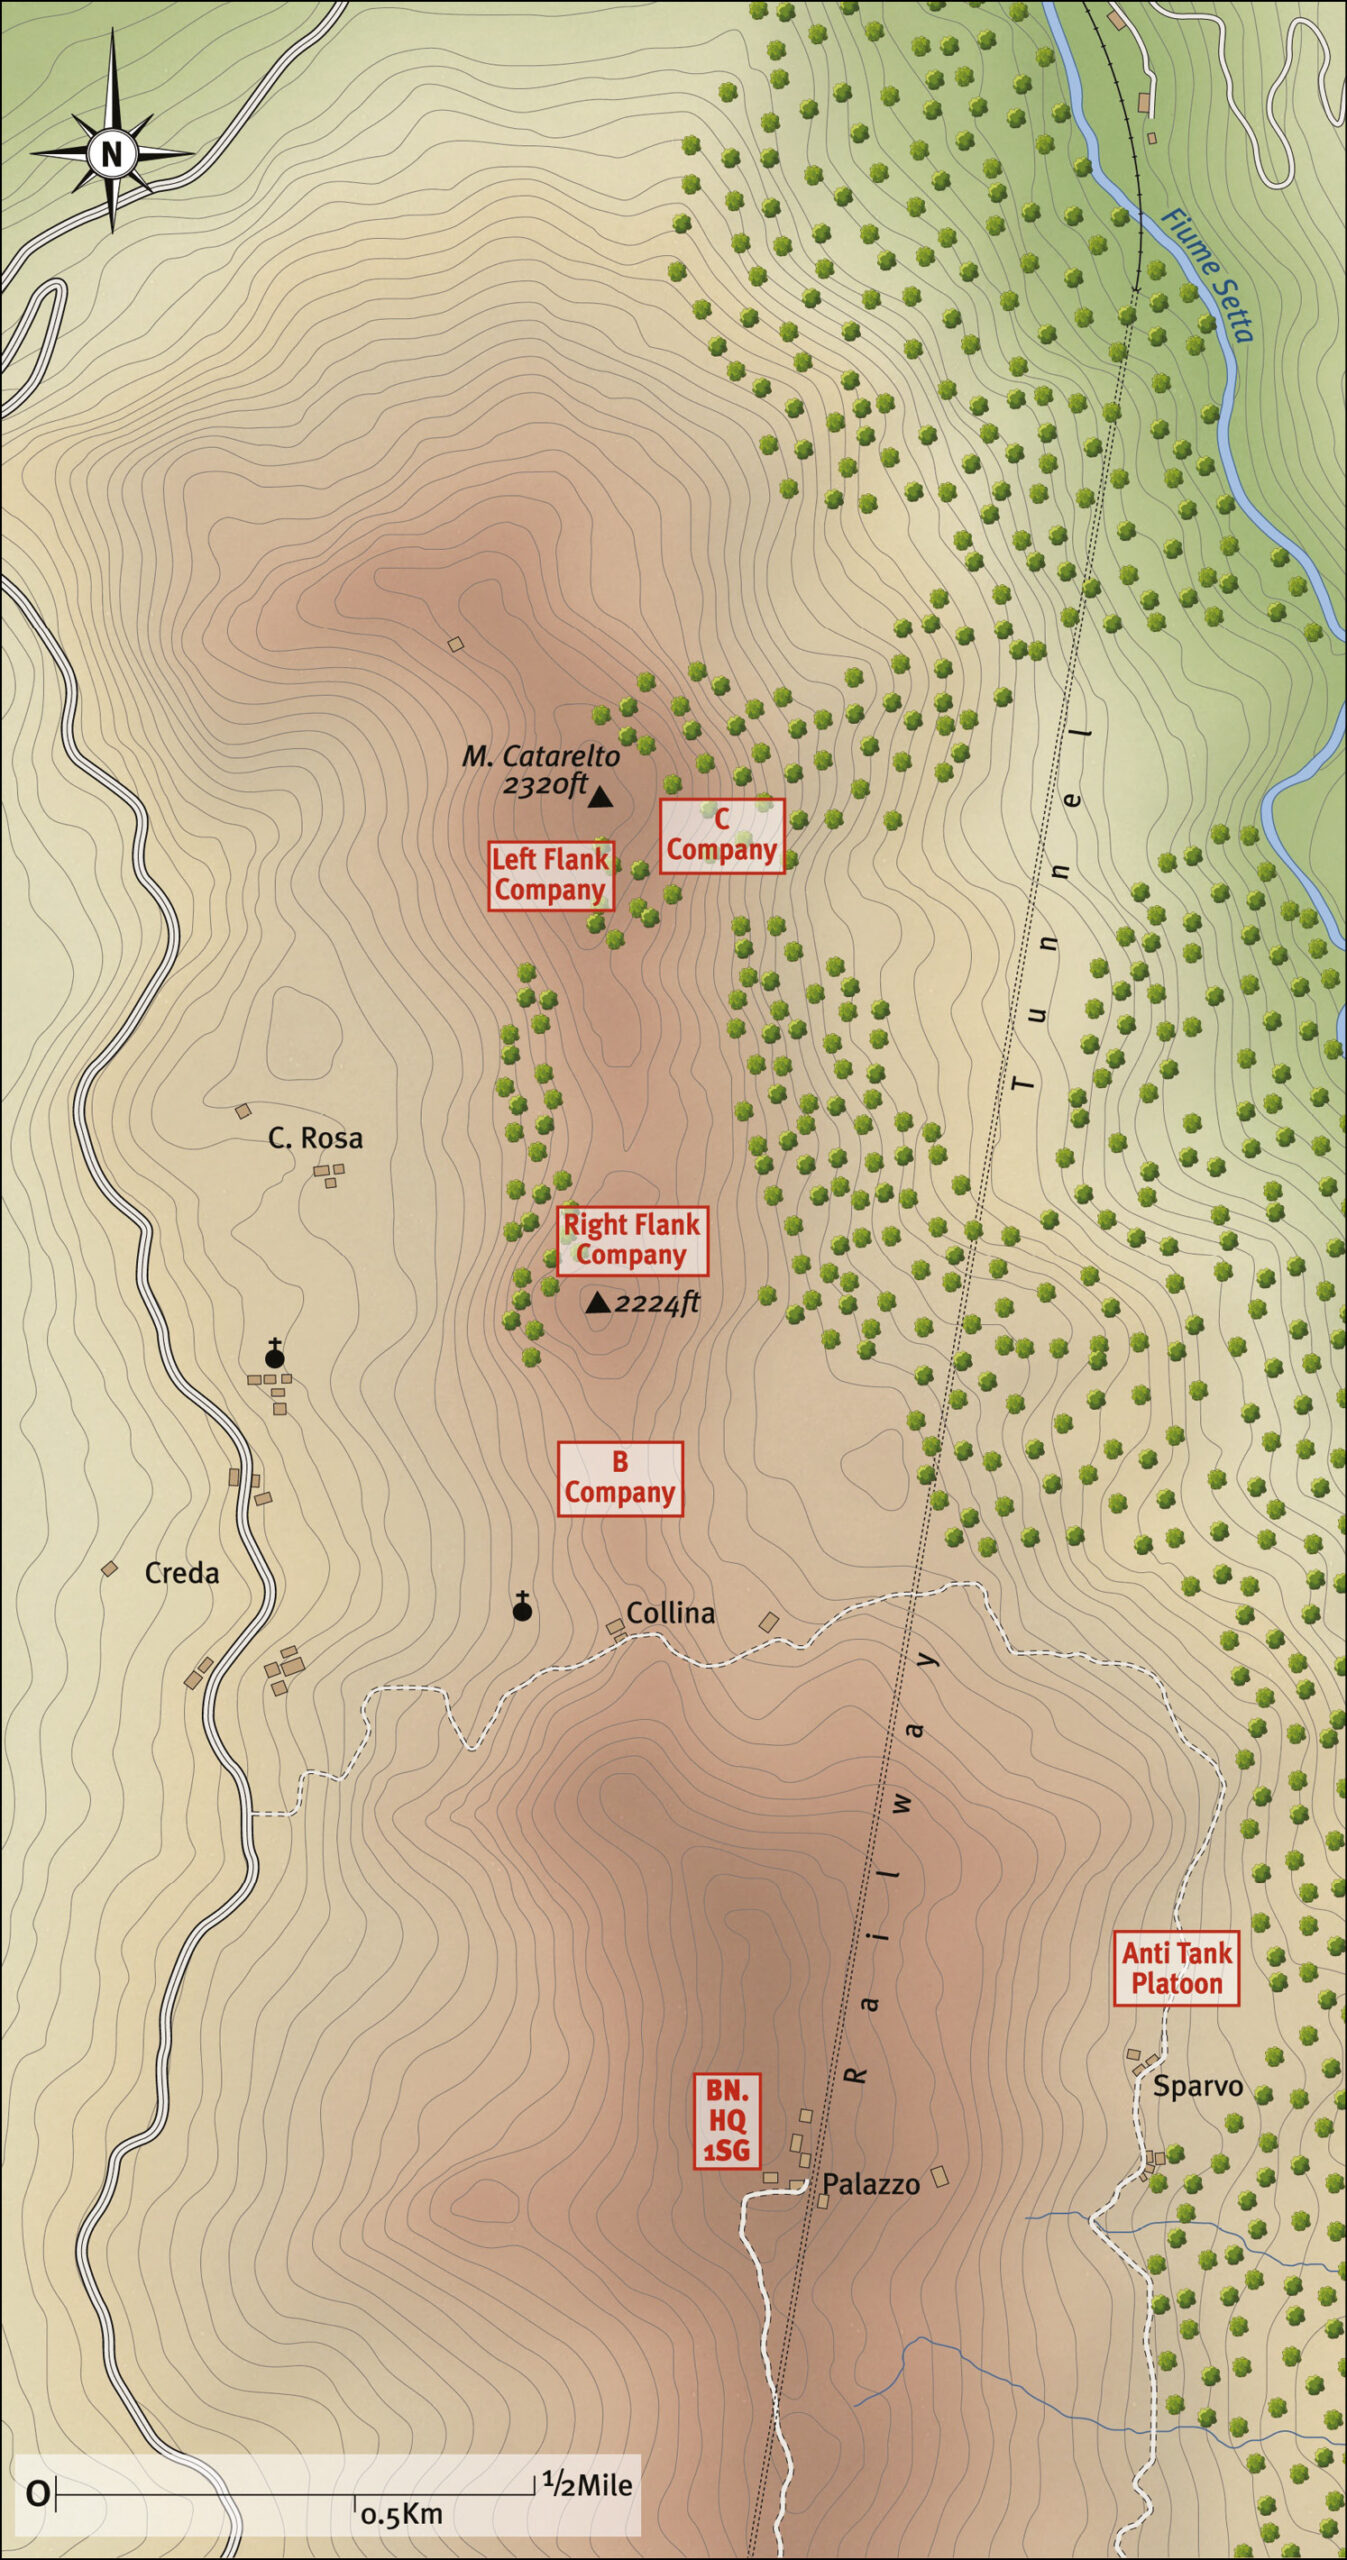 ABOVE The Battle of Catarelto, 28 September-3 October 1944, showing Scots Guards positions at 19.00 hours on 30 September. (The tunnel marked on the map was, in fact, a deep high-speed railway line one of Mussolini's pet ideas. This was not clear to the Allies, however, and 1st Battalion, Scots Guards, spent many hours searching for it in vain!)